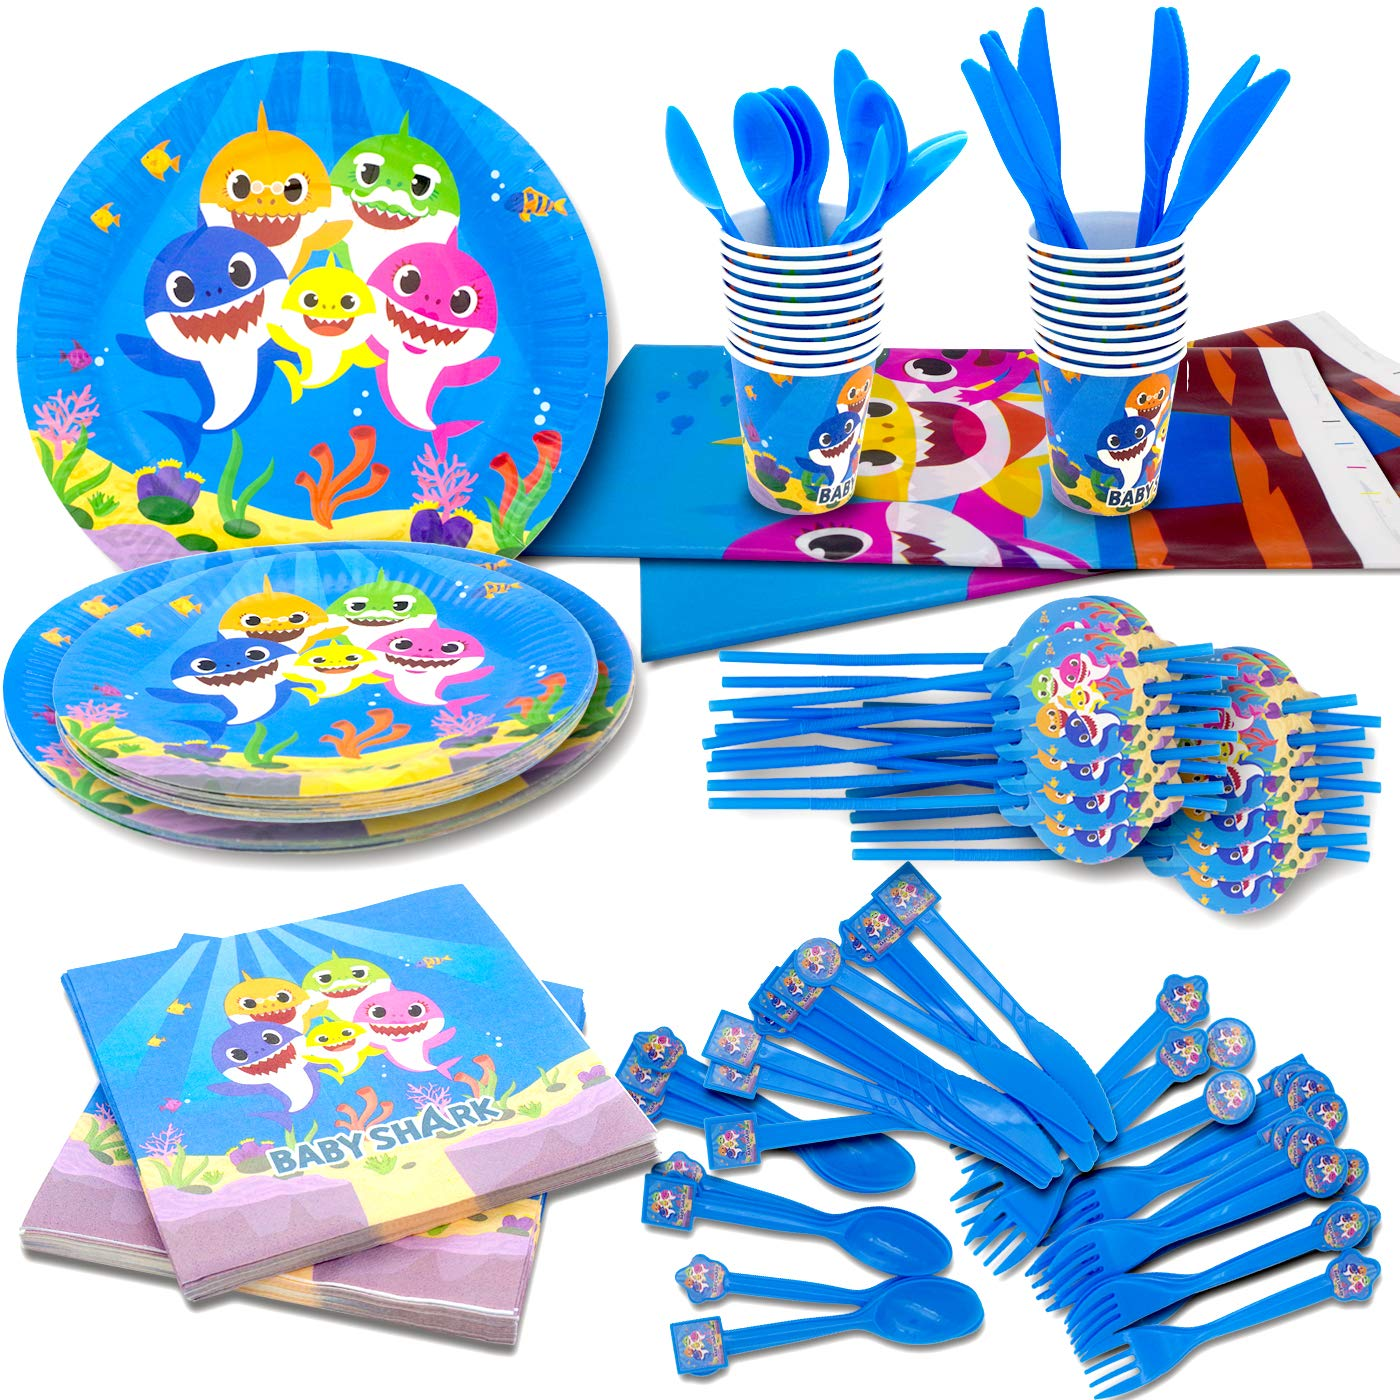 Cute Shark Party Supplies,182 Pieces Little Shark Party Decoration,Includes Table Cloth 7''Plate 9''Plates Napkins Cups Forks Knives Spoons Straws, Serves 20 Guest